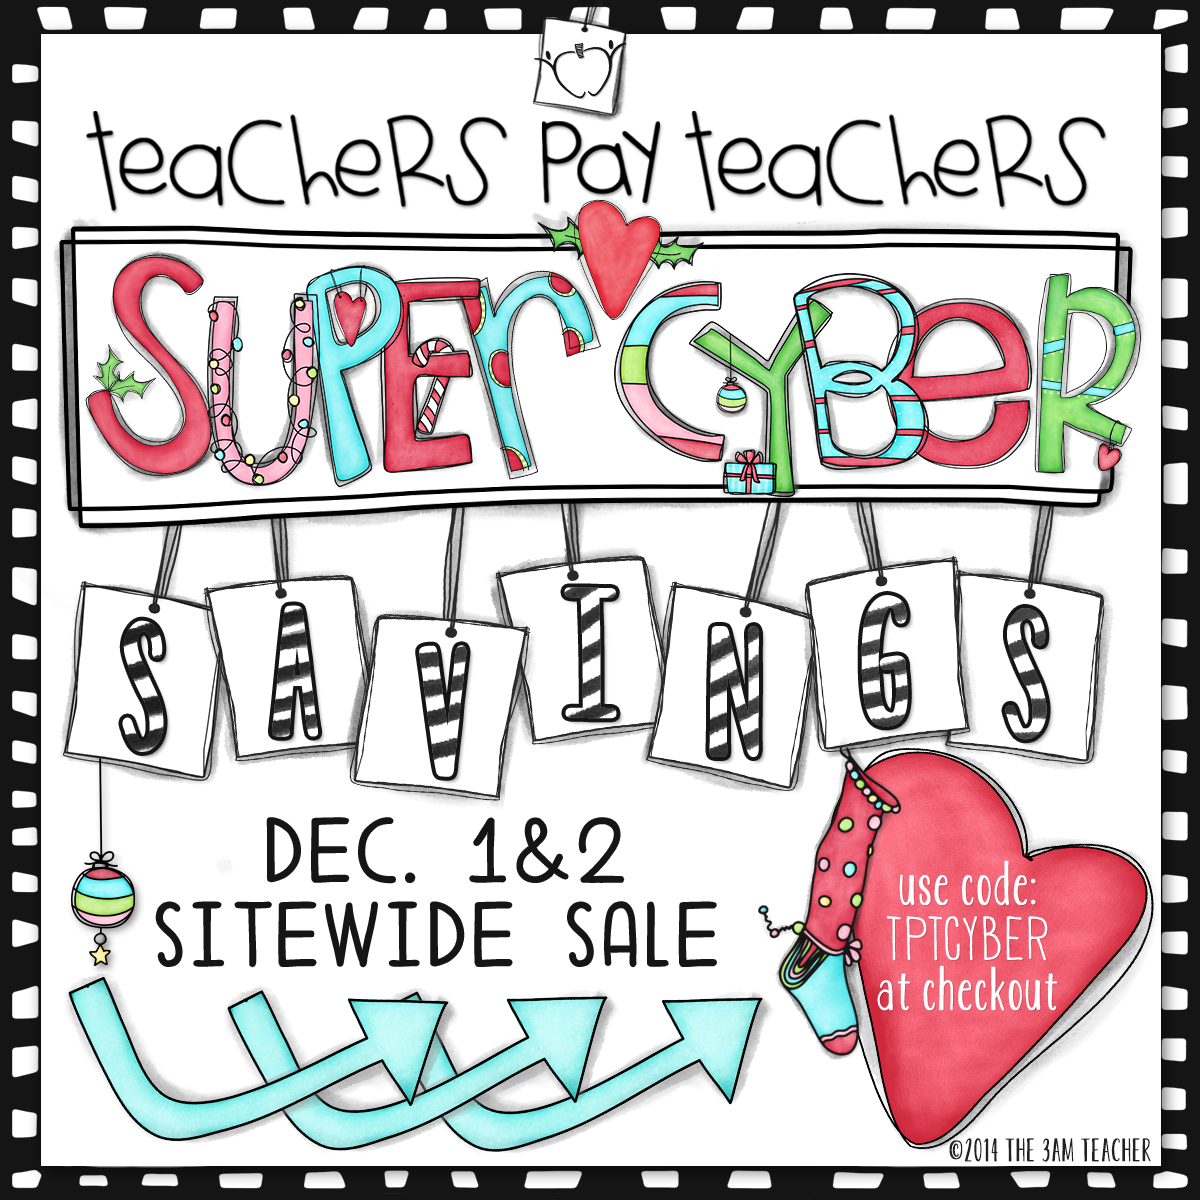 http://www.teacherspayteachers.com/Store/Julie-Davis-6406